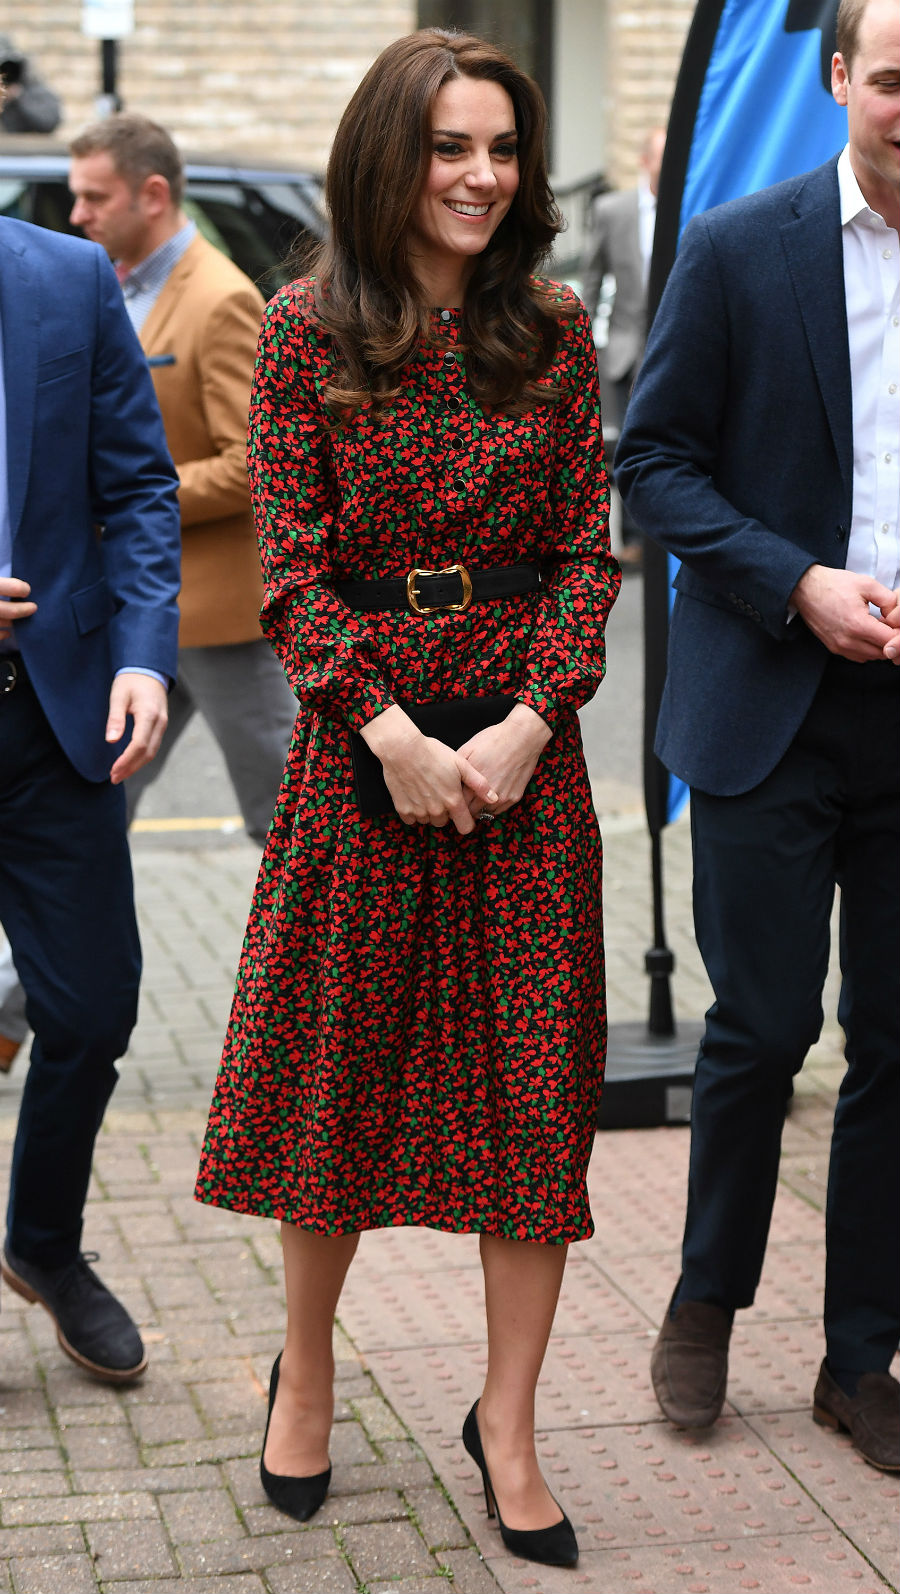 Kate Middleton. Top 5: Kate Middleton